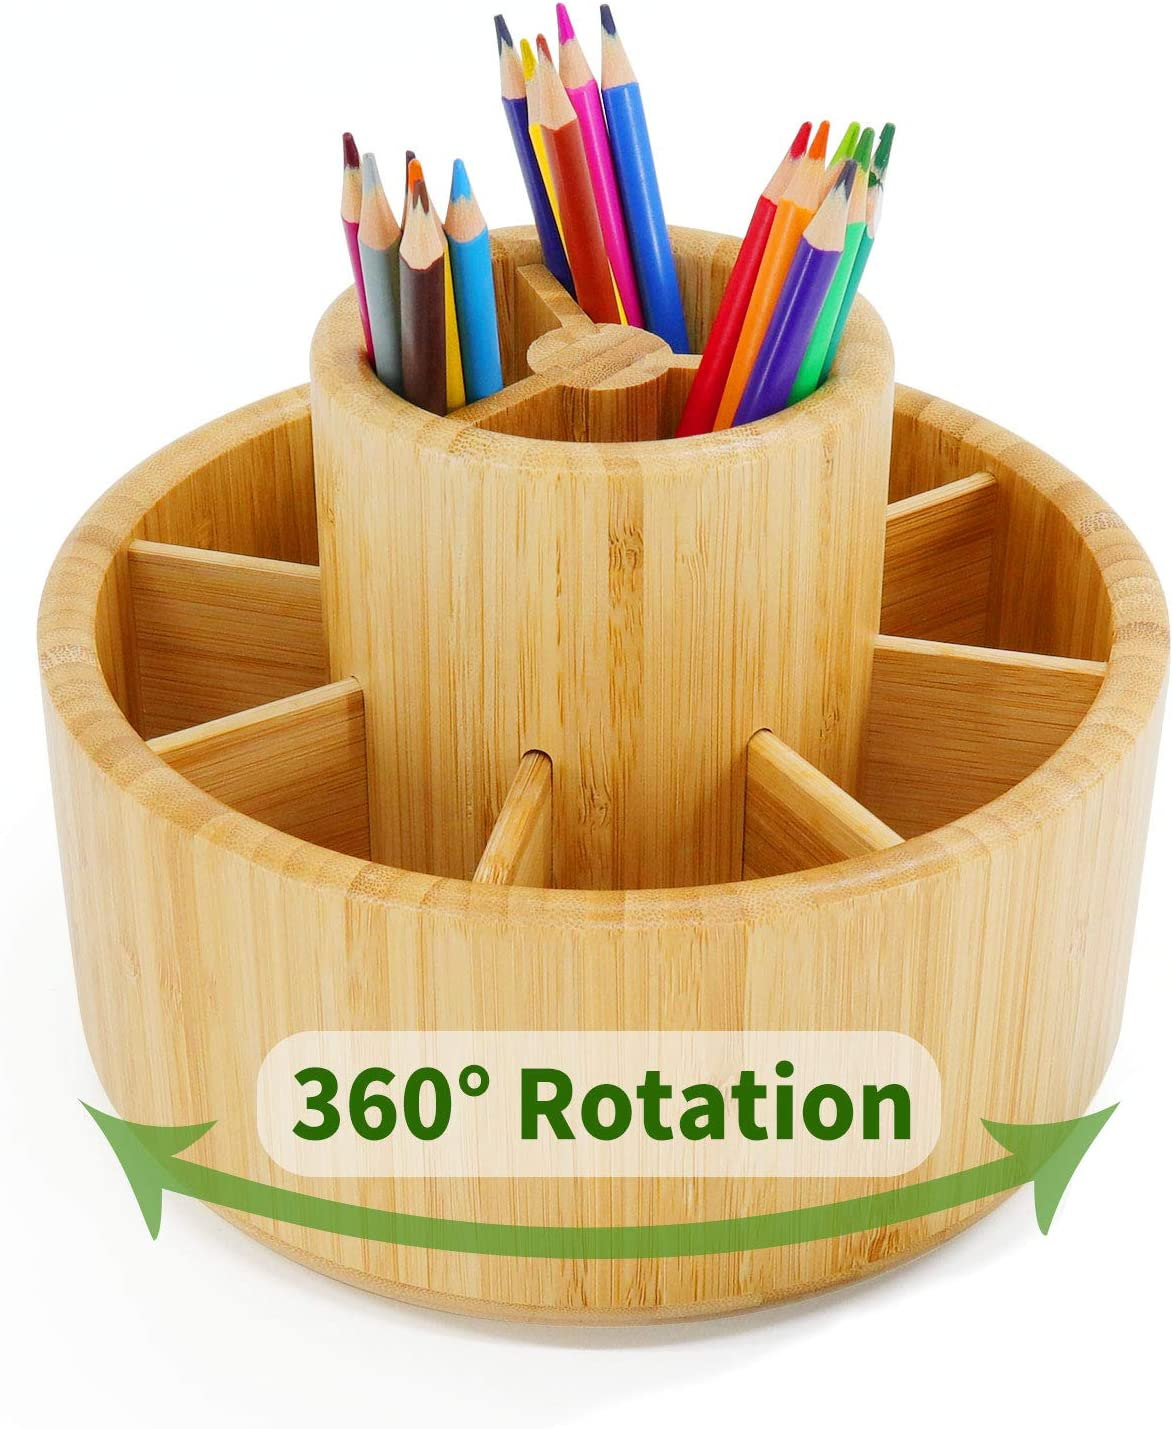 Art Supply Organizer with 6 Compartments Large Capacity Pencil Holder Marbrasse Bamboo Rotating Pen Organizer for Desk Home Office Supplies Desktop Storage Caddy for Colored Pencil,Pen,Marker